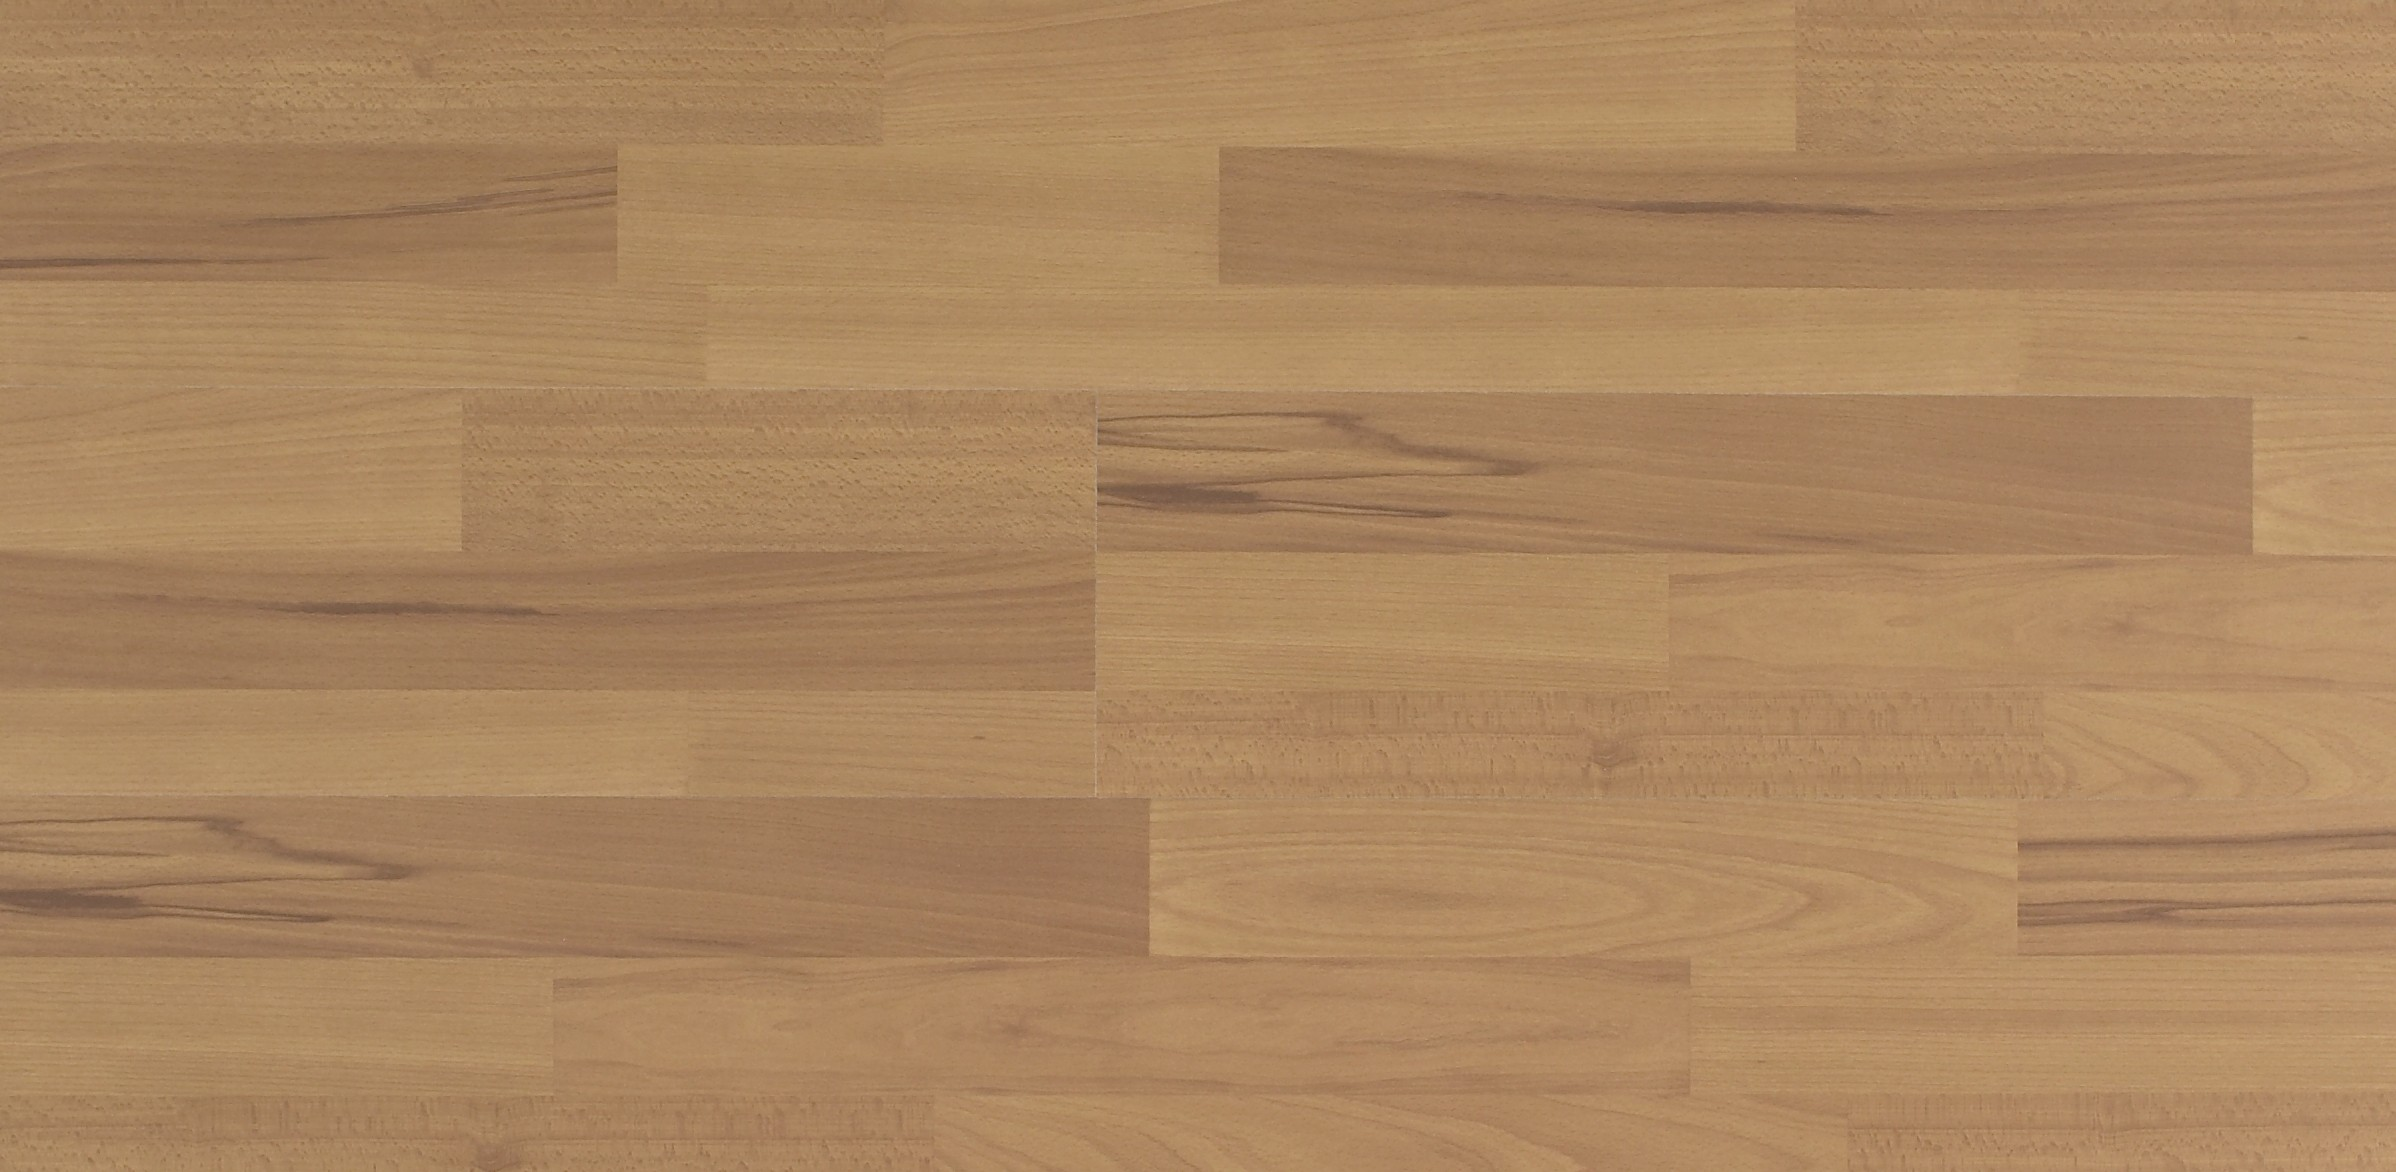 Wooden tiles texture crowdbuild for 41 wood tiles texture wooden texture wood tiles texture wooden dailygadgetfo Image collections